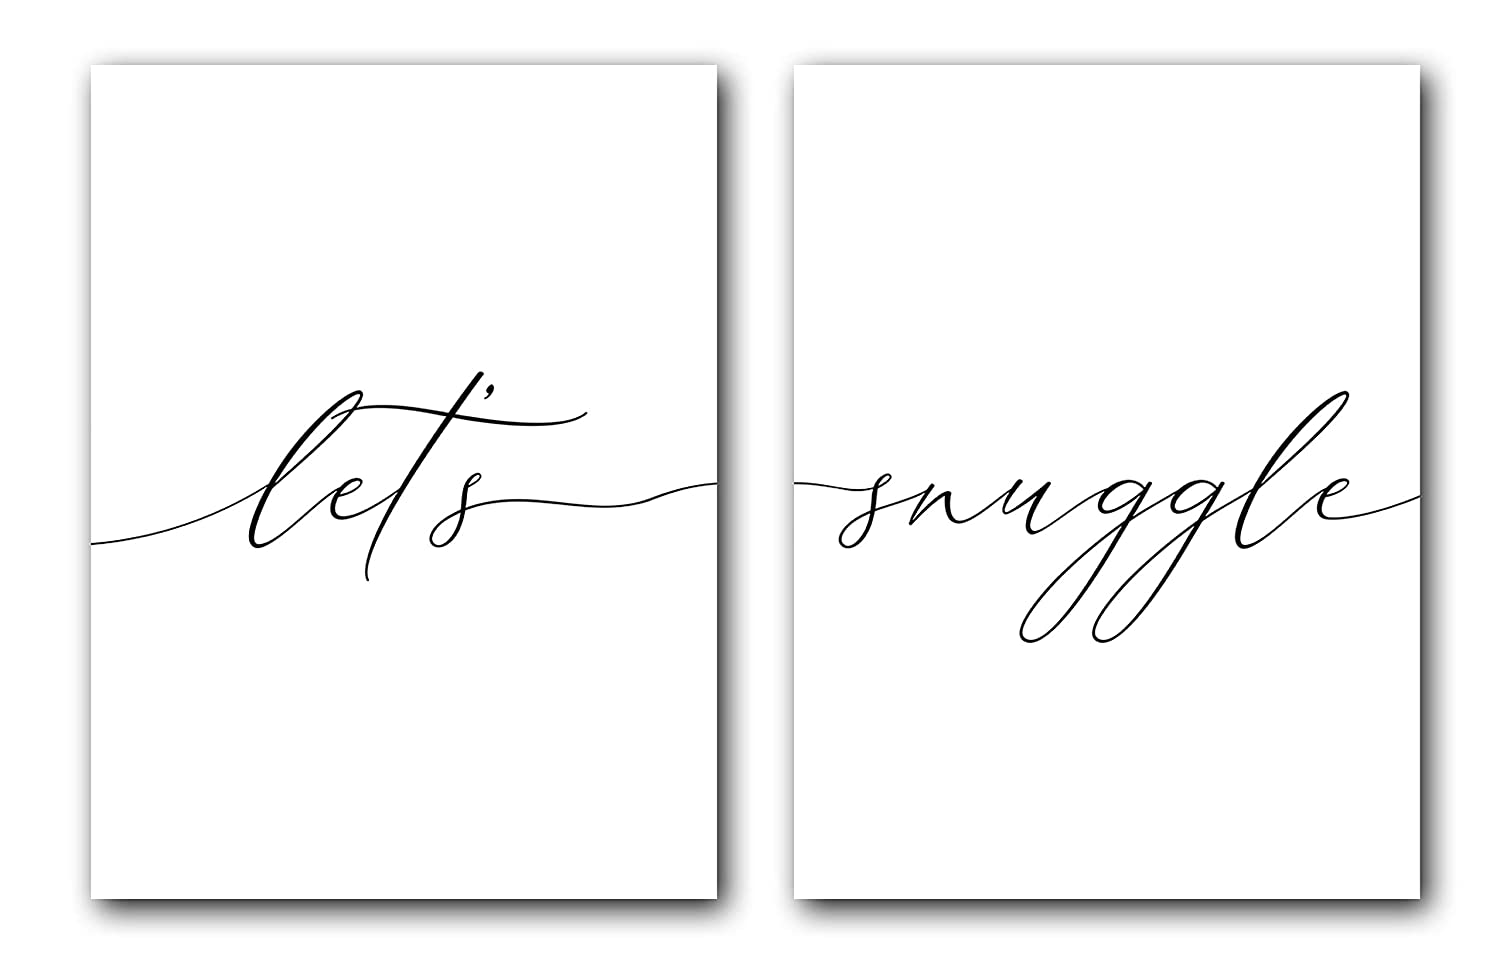 Let's Snuggle, Unframed, 18 x 24 Inches, Set of 2, Posters, Minimalist Art Typography Art, Bedroom Wall Art, Romantic Wall Decor